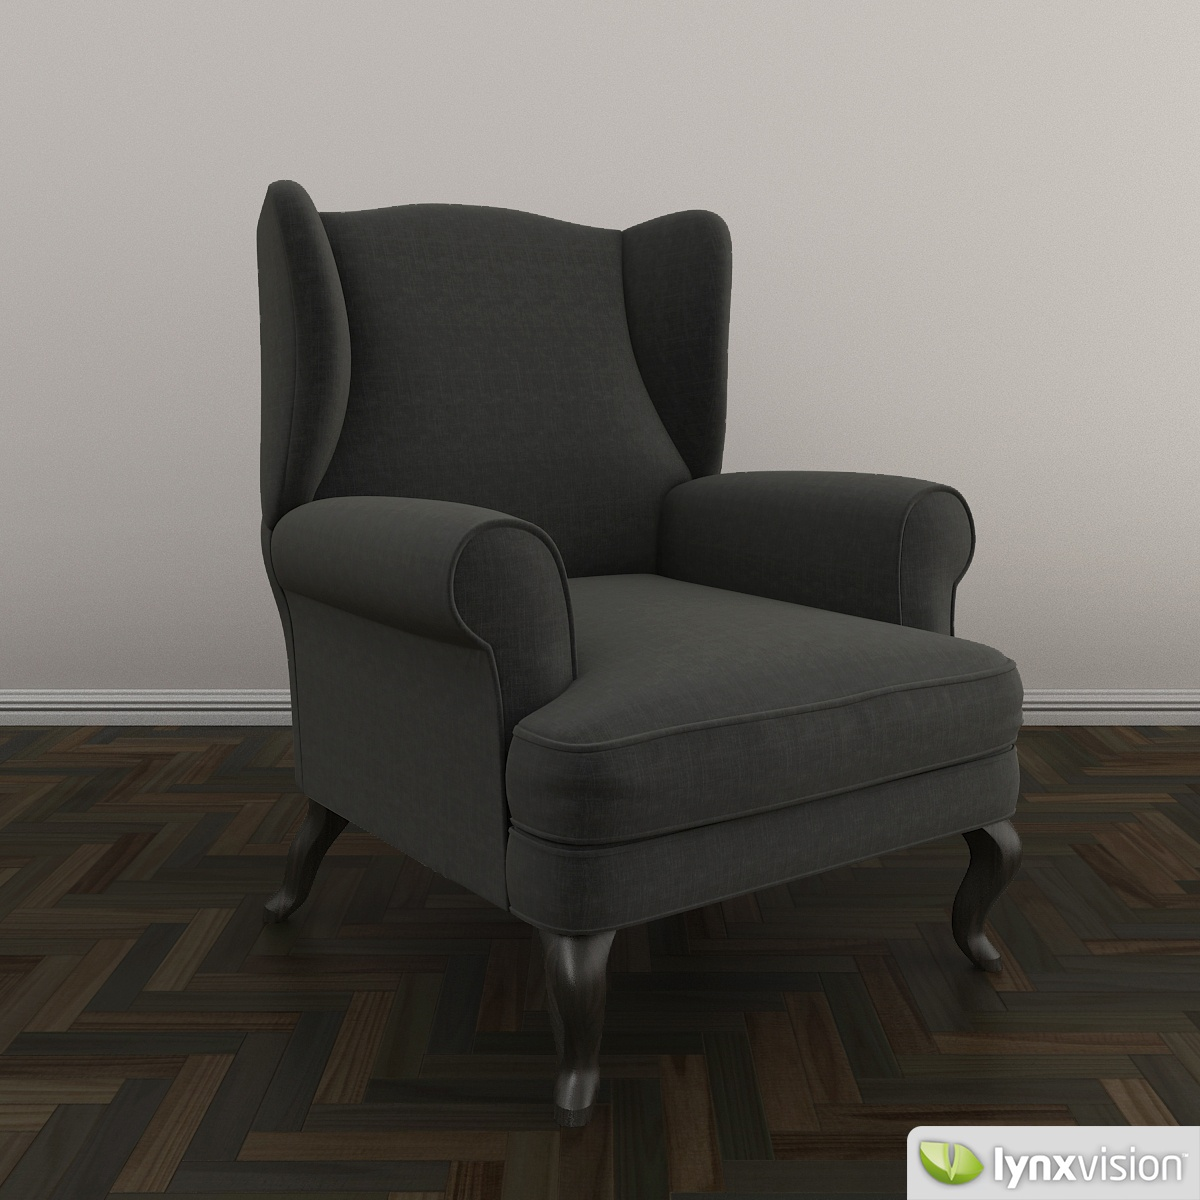 Free Upholstered Armchair free 3D Model .max .obj .fbx ...